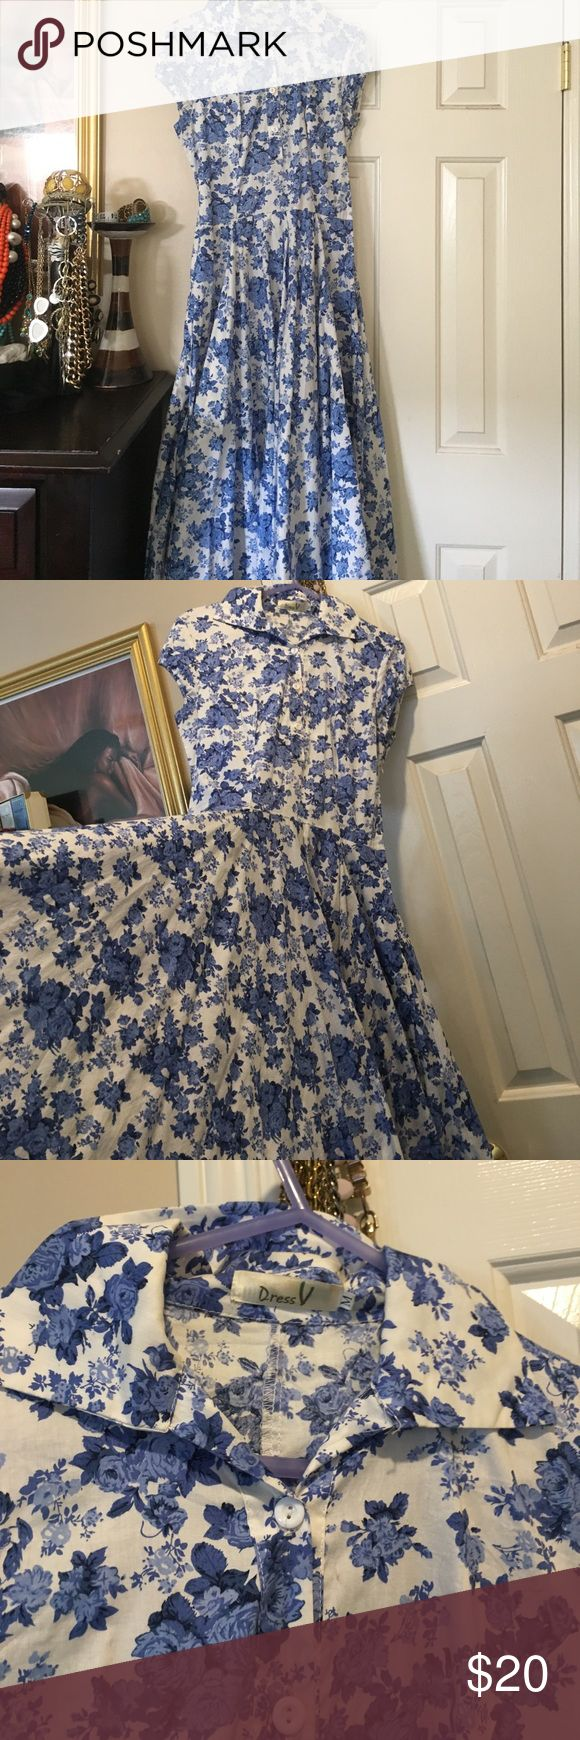 Blue and White Vintage Dress In good condition Dresses